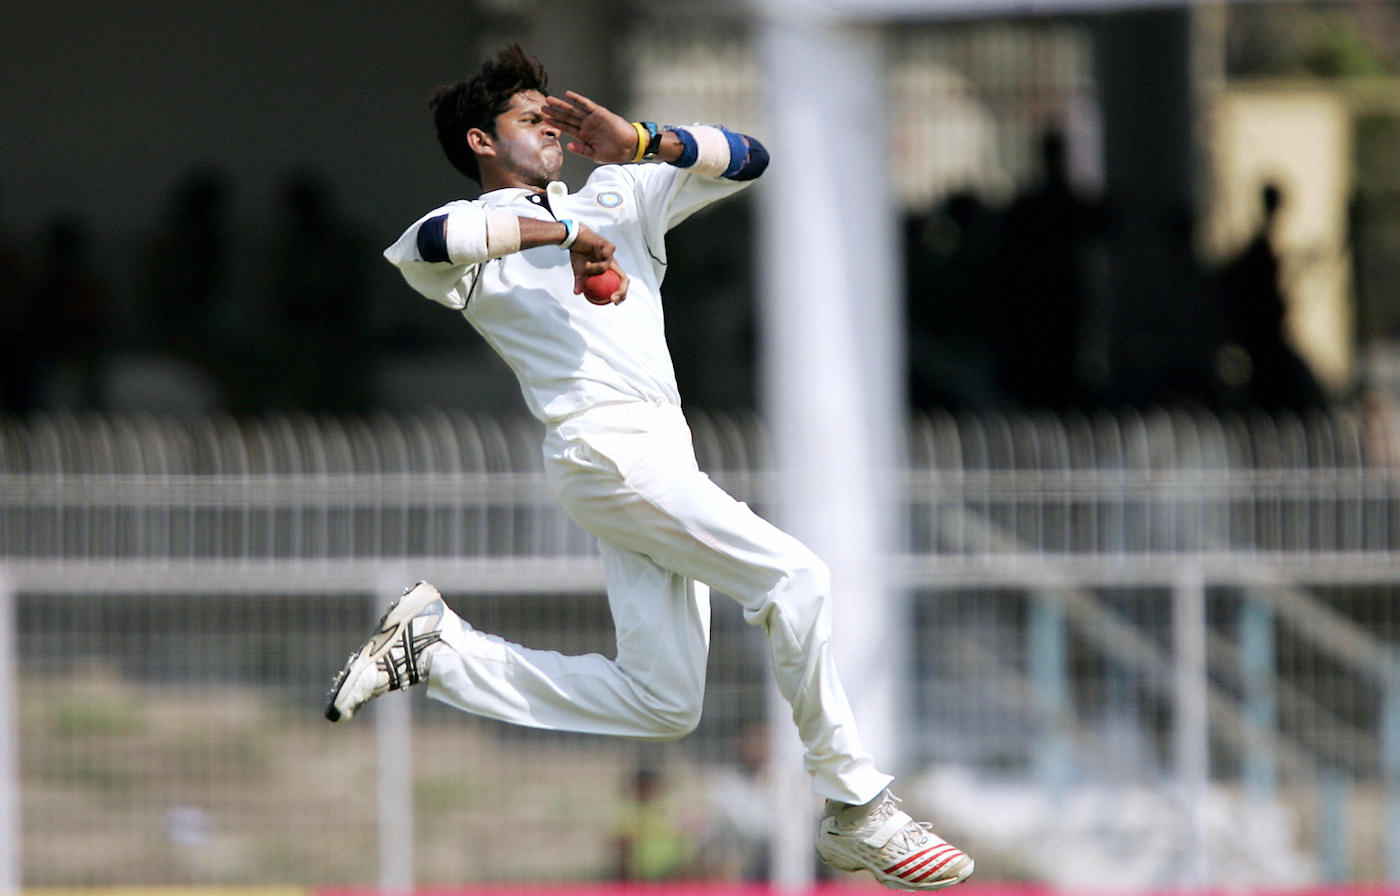 Before he muscled up, Sreesanth was a wiry athlete of the sort Kerala typically produced